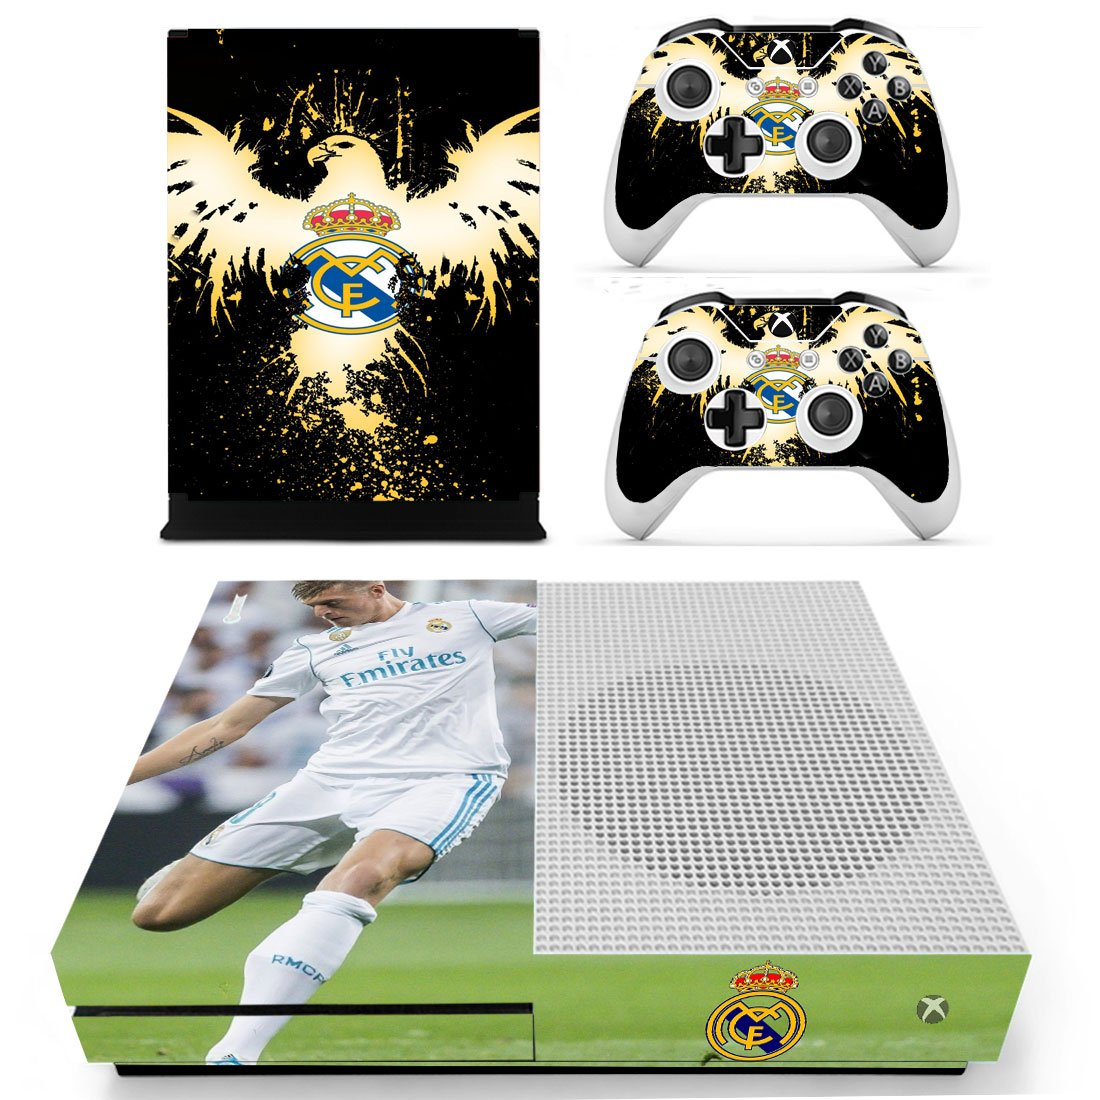 Real Madrid Xbox One S Skin Sticker Wrap